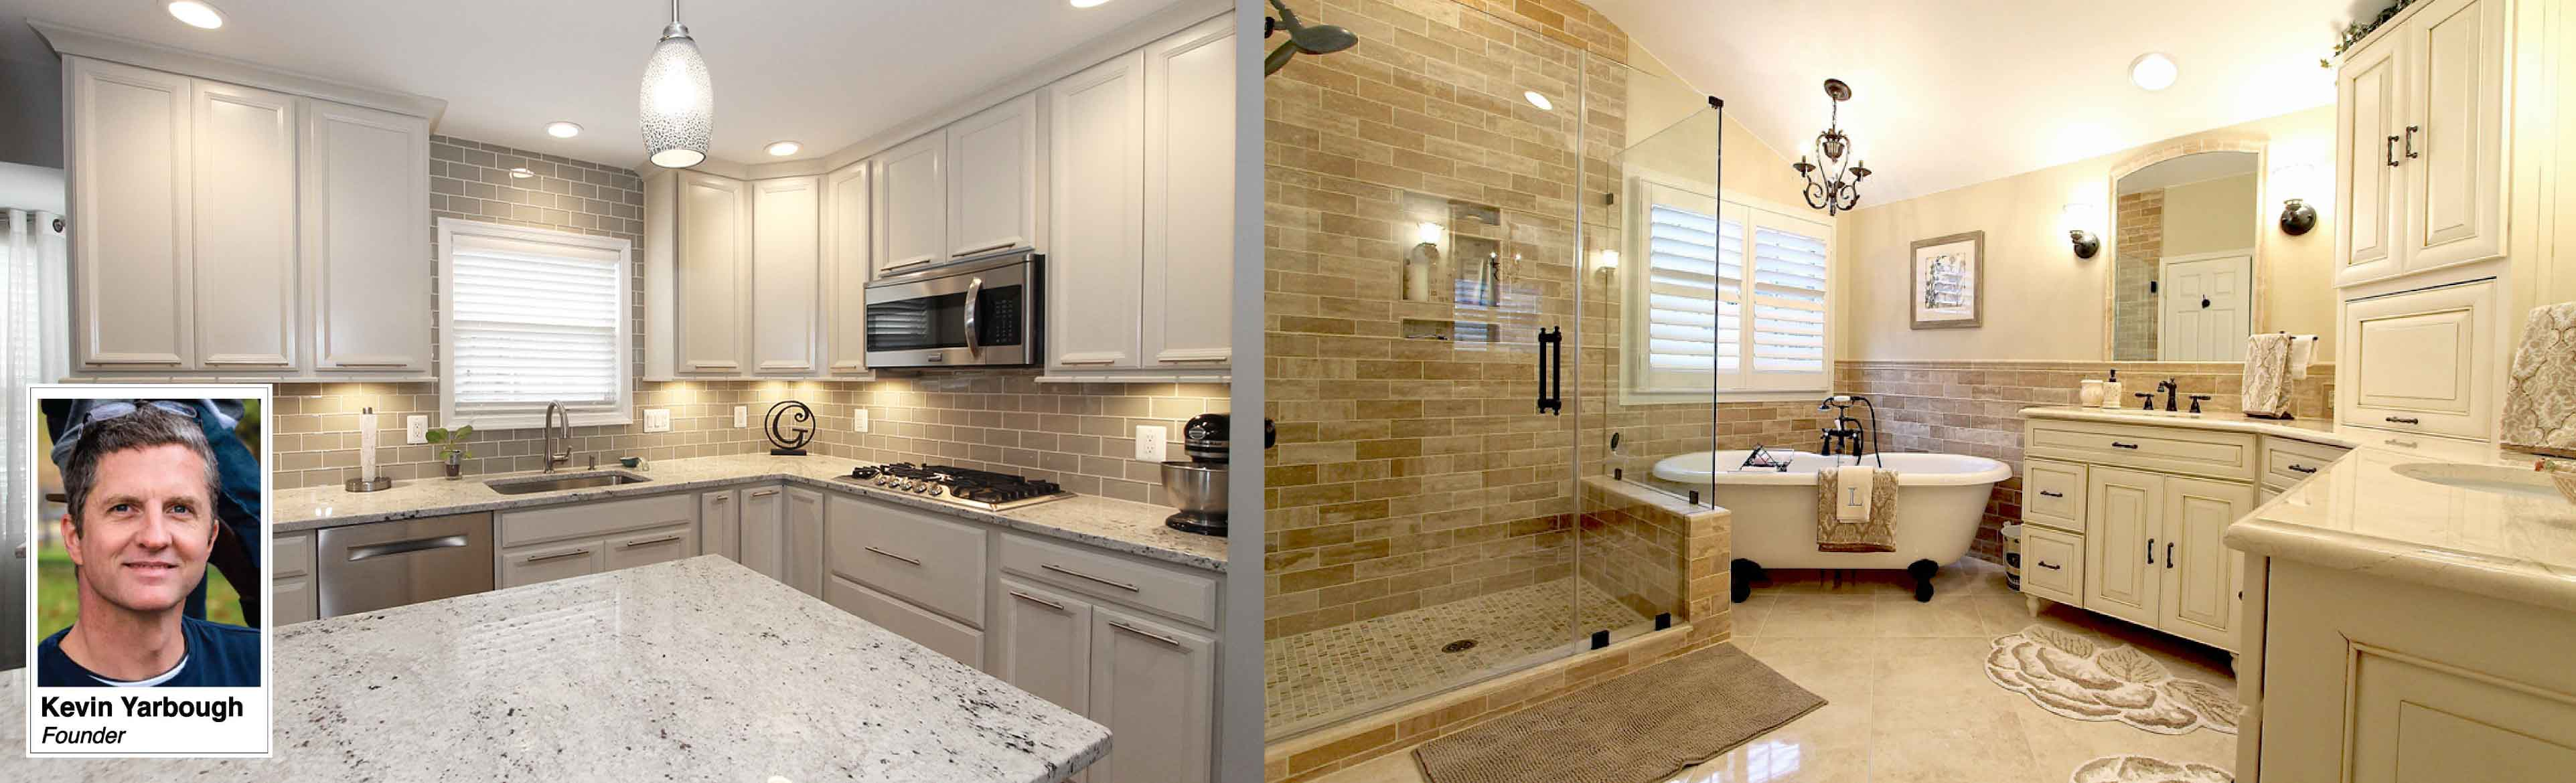 ramcomllc kitchen remodeling manassas va Kitchen remodel with quartz counters glass tile backsplash white cabinets under cabinet lighting